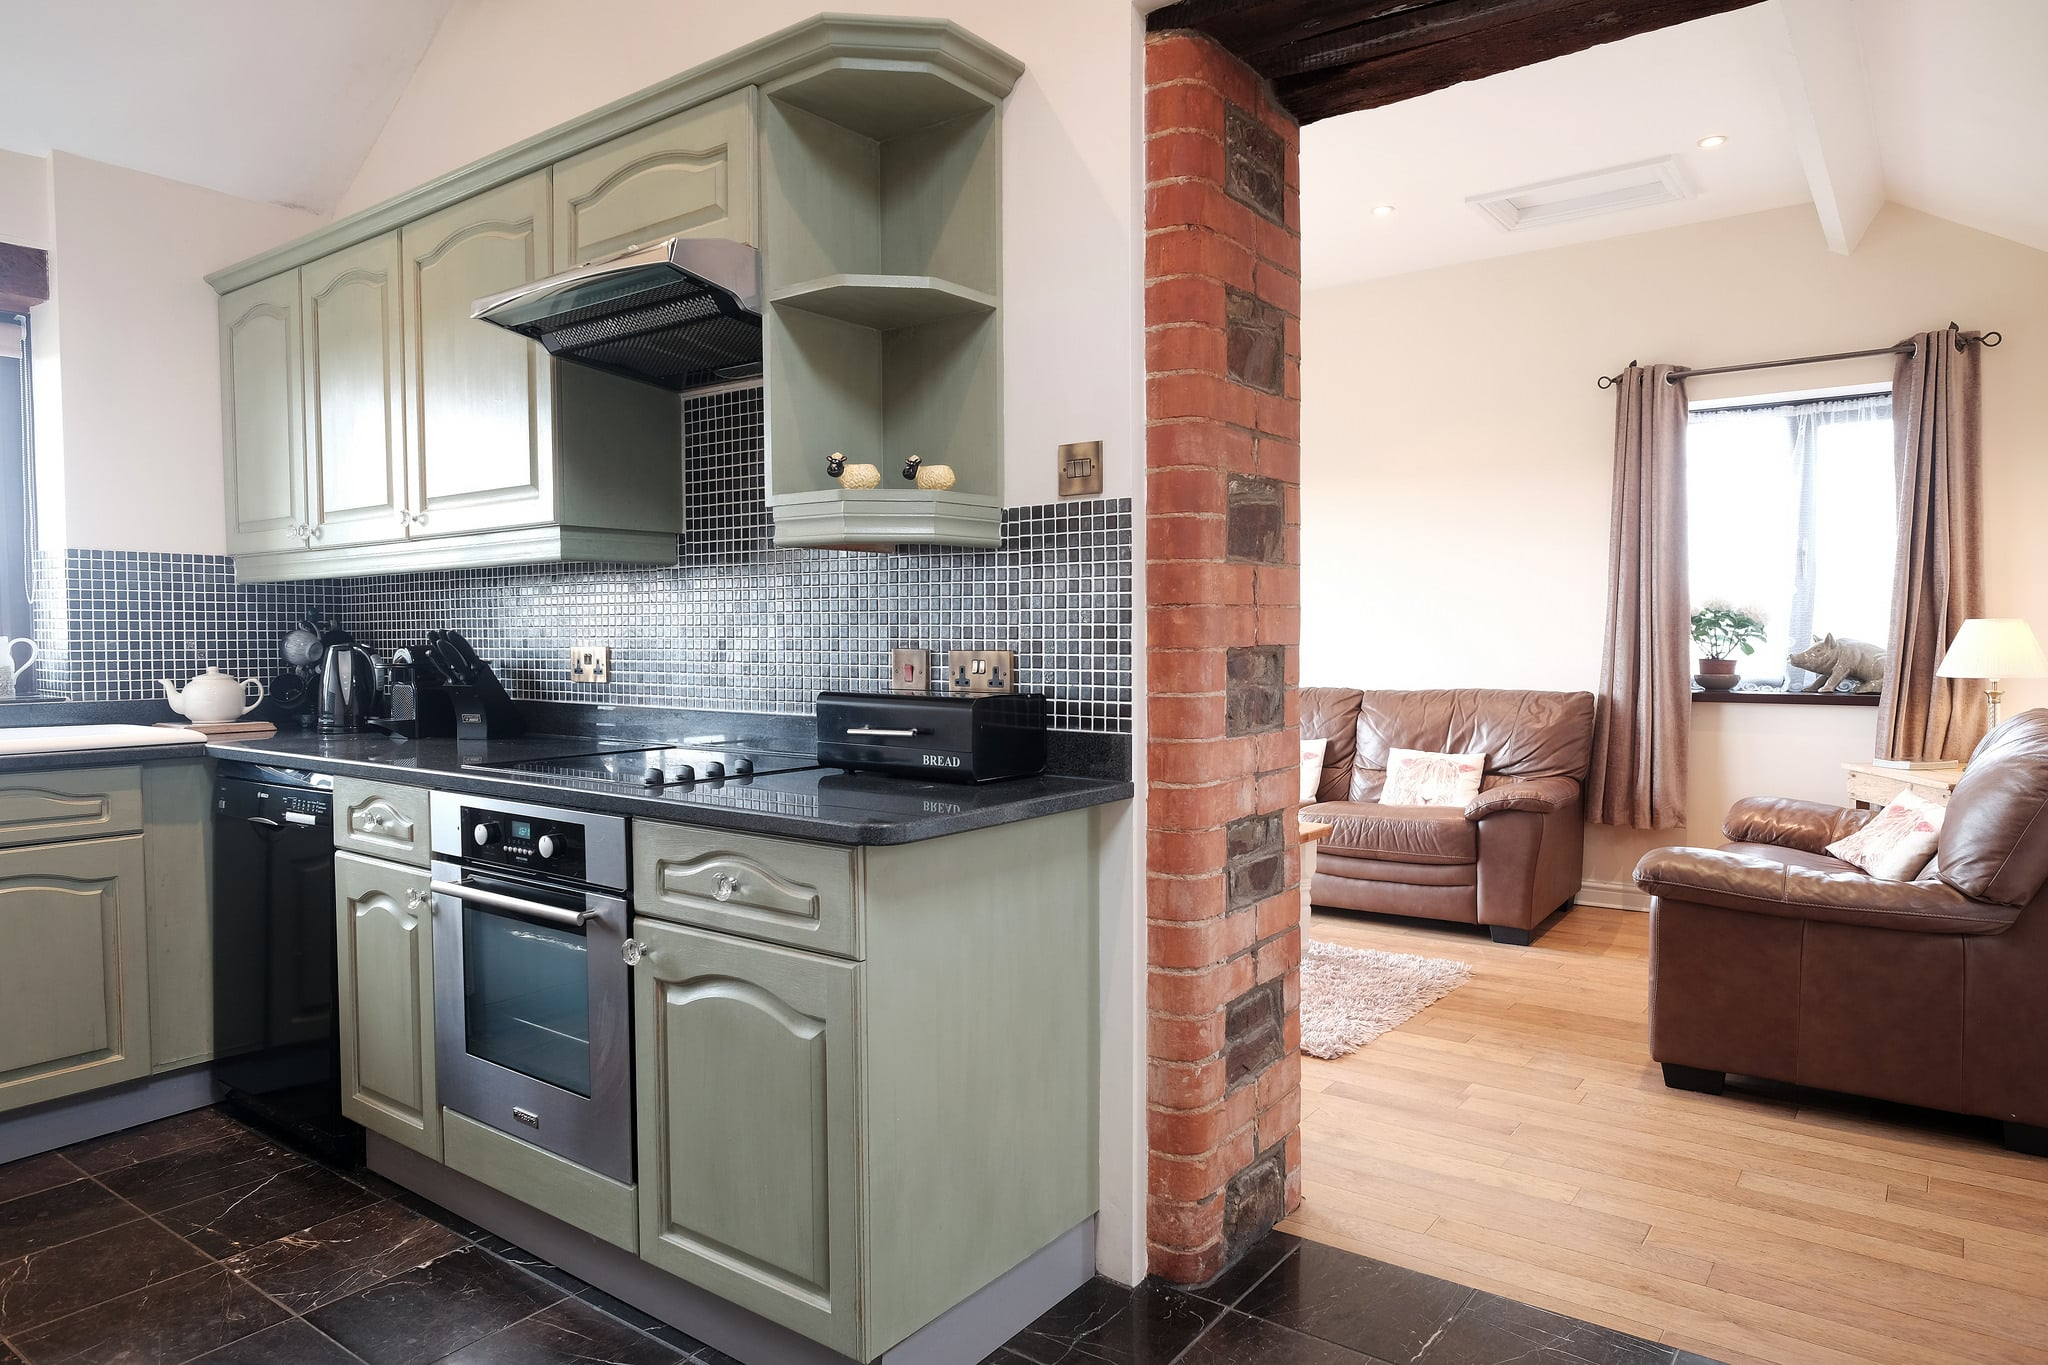 Shabby chic country style kitchen with granite worktops